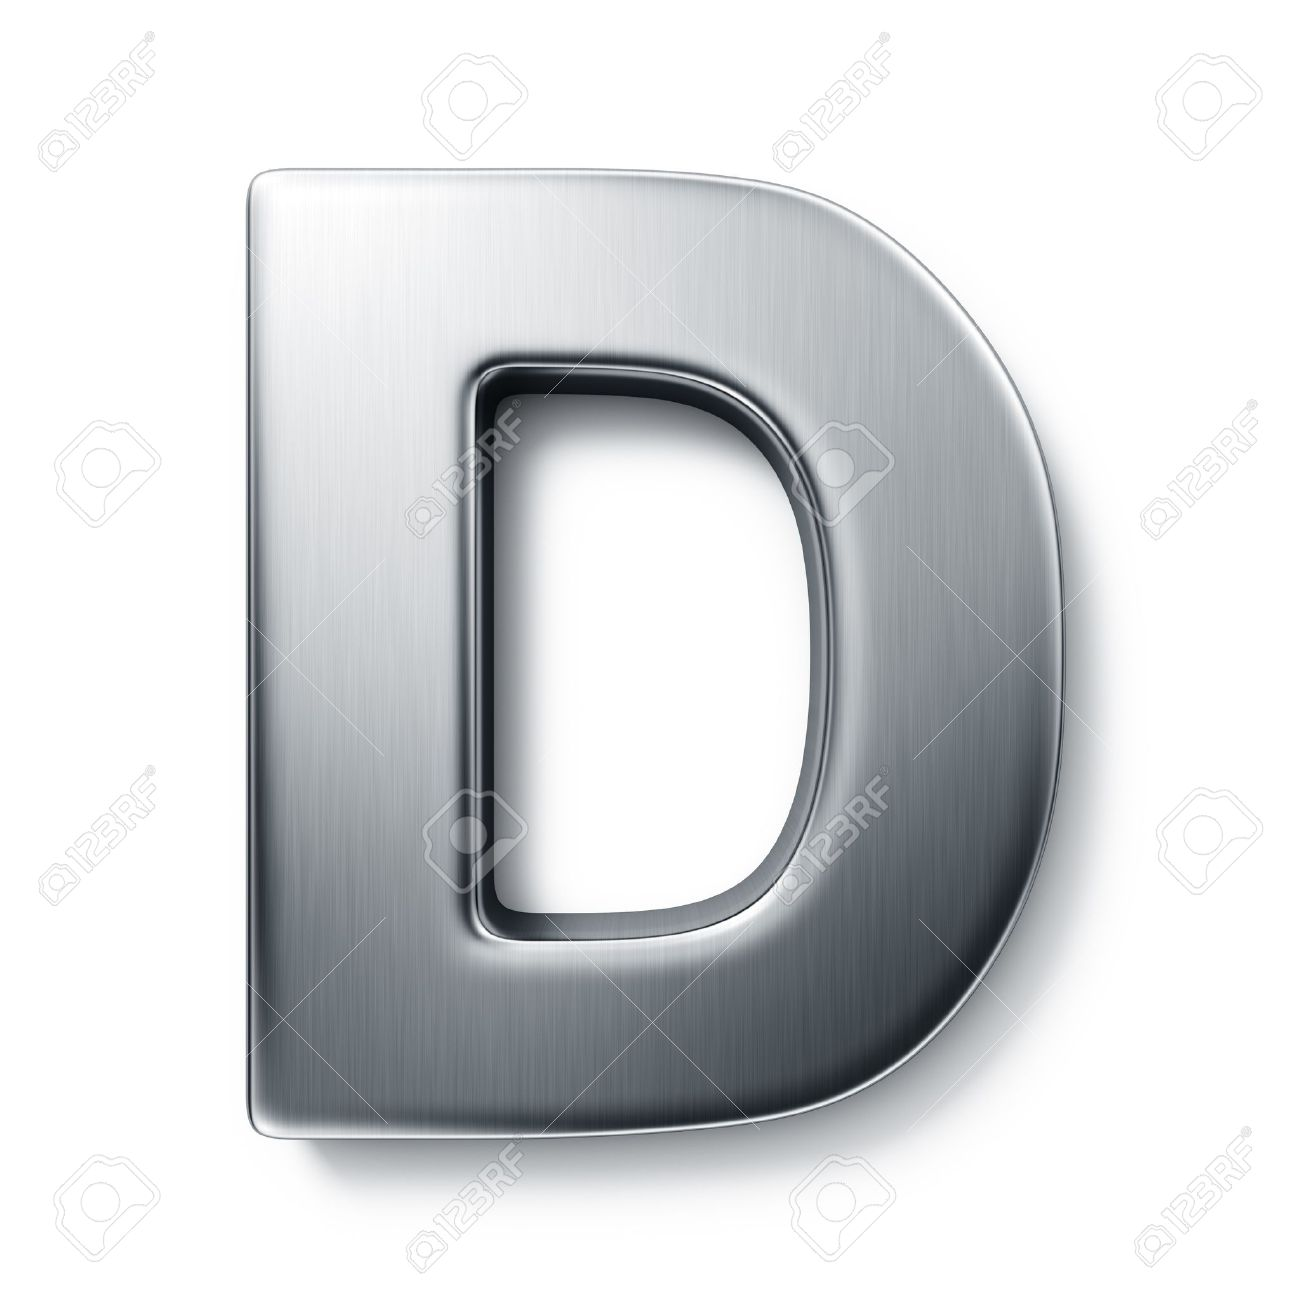 D background images - 3d Rendering Of The Letter D In Brushed Metal On A White Isolated Background Stock